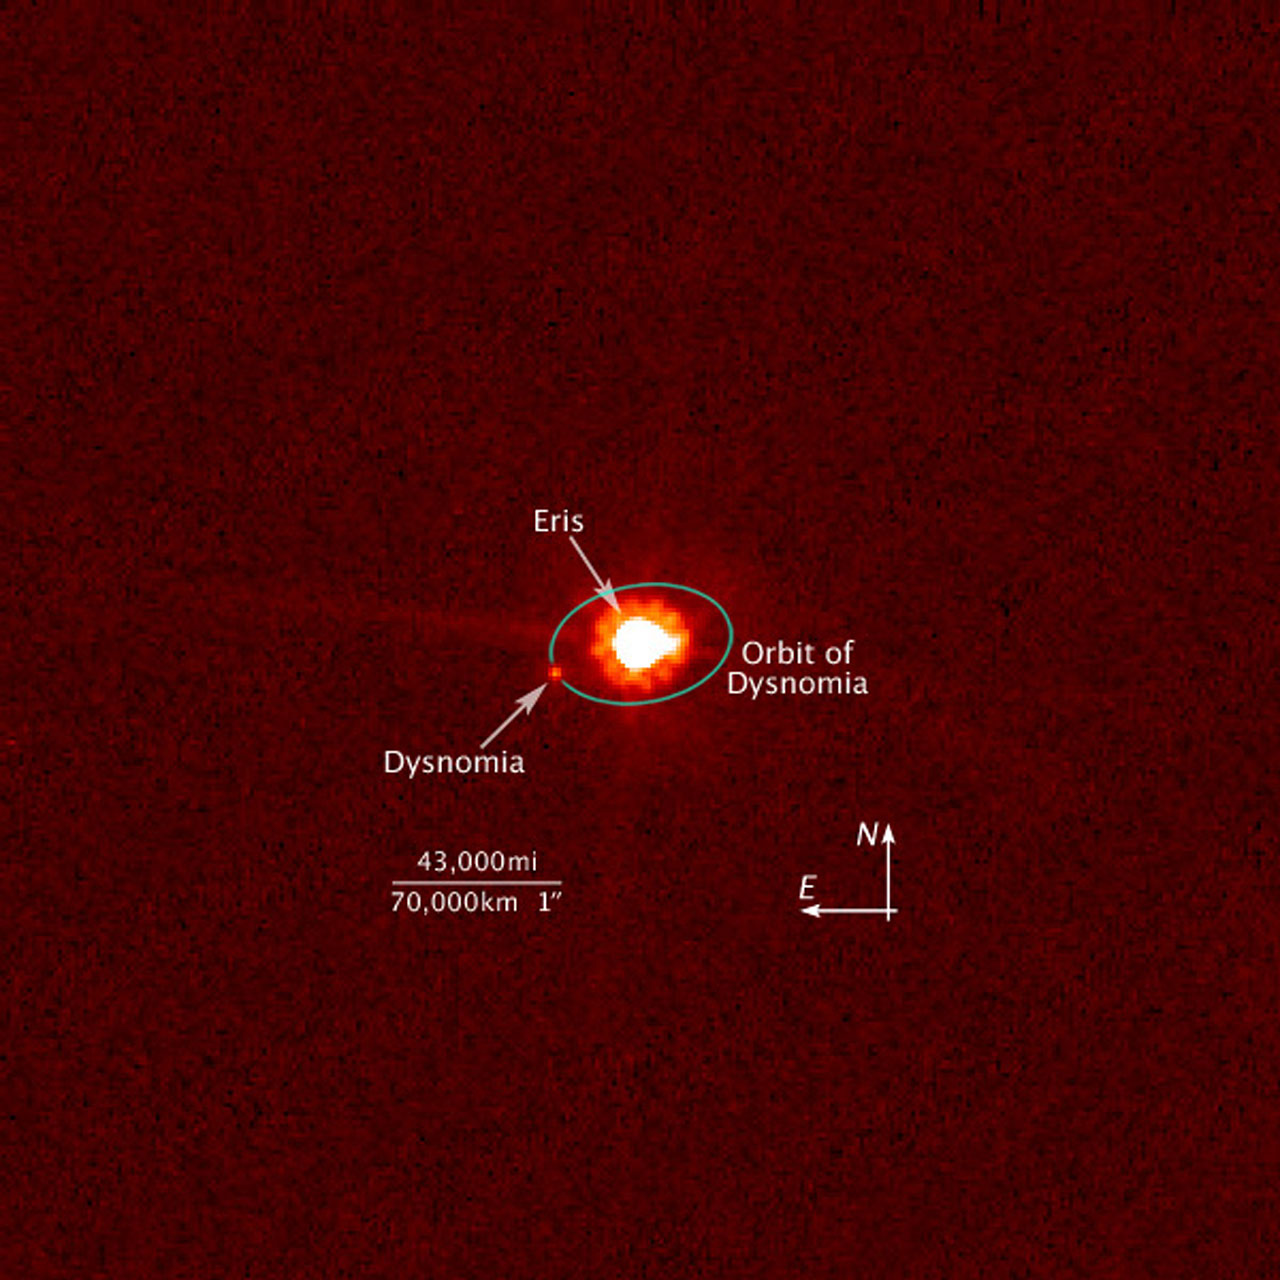 This is an image of the dwarf planet Eris (centre) and its satellite Dysnomia (at 9 o'clock position) taken with NASA/ESA's Hubble Space Telescope on Aug. 30, 2006.